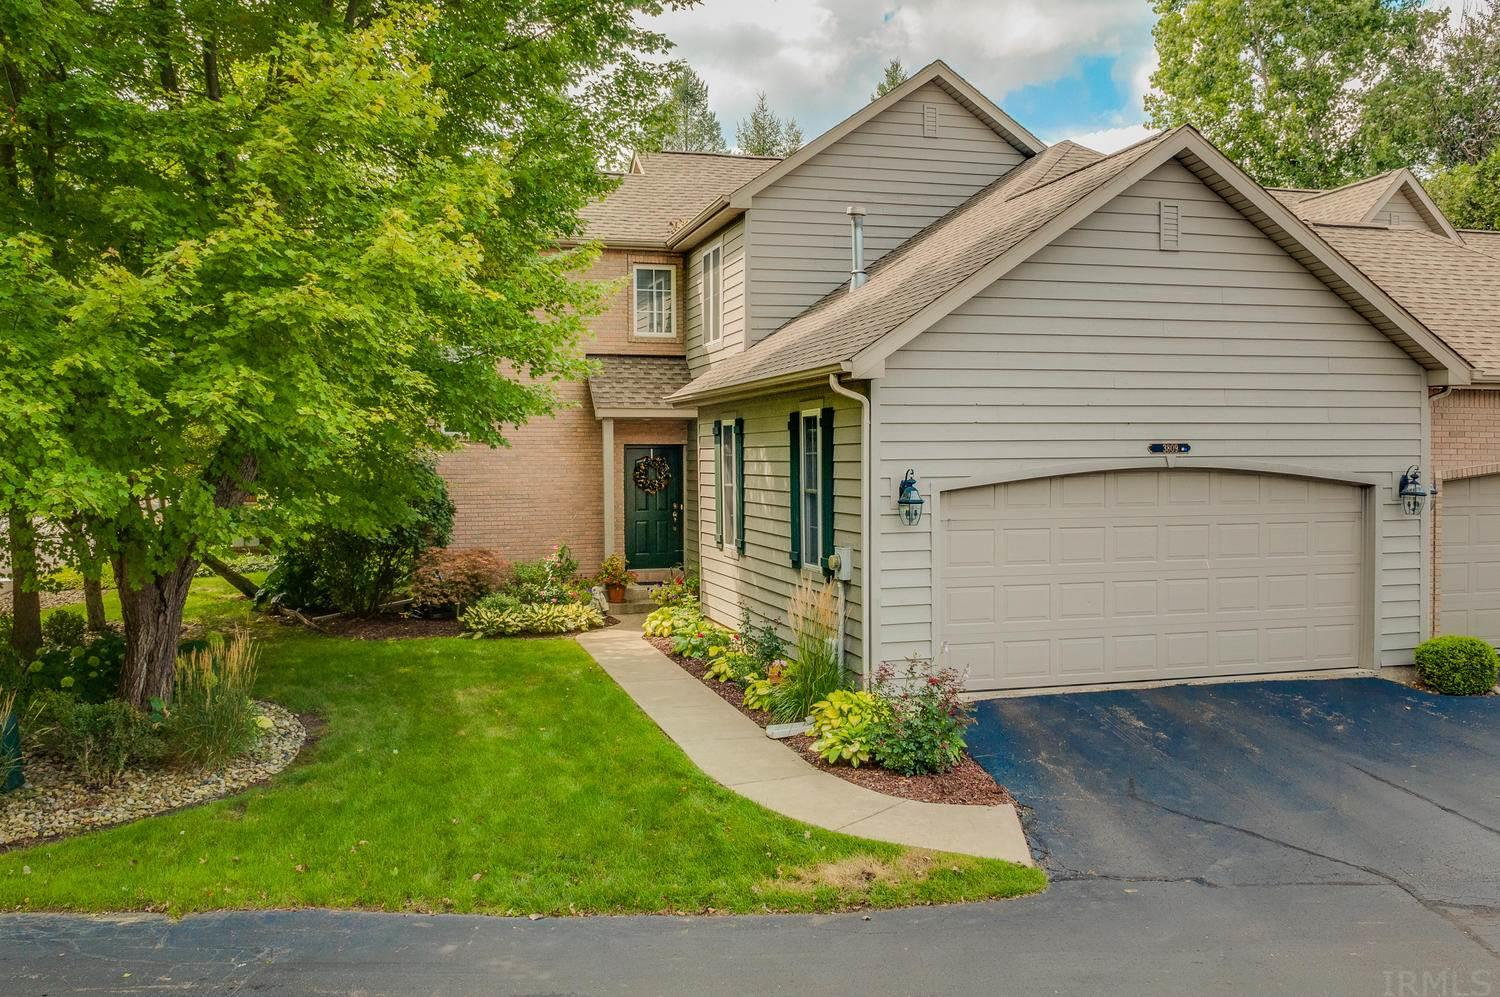 3809 Emerald Bay Mishawaka, IN 46545